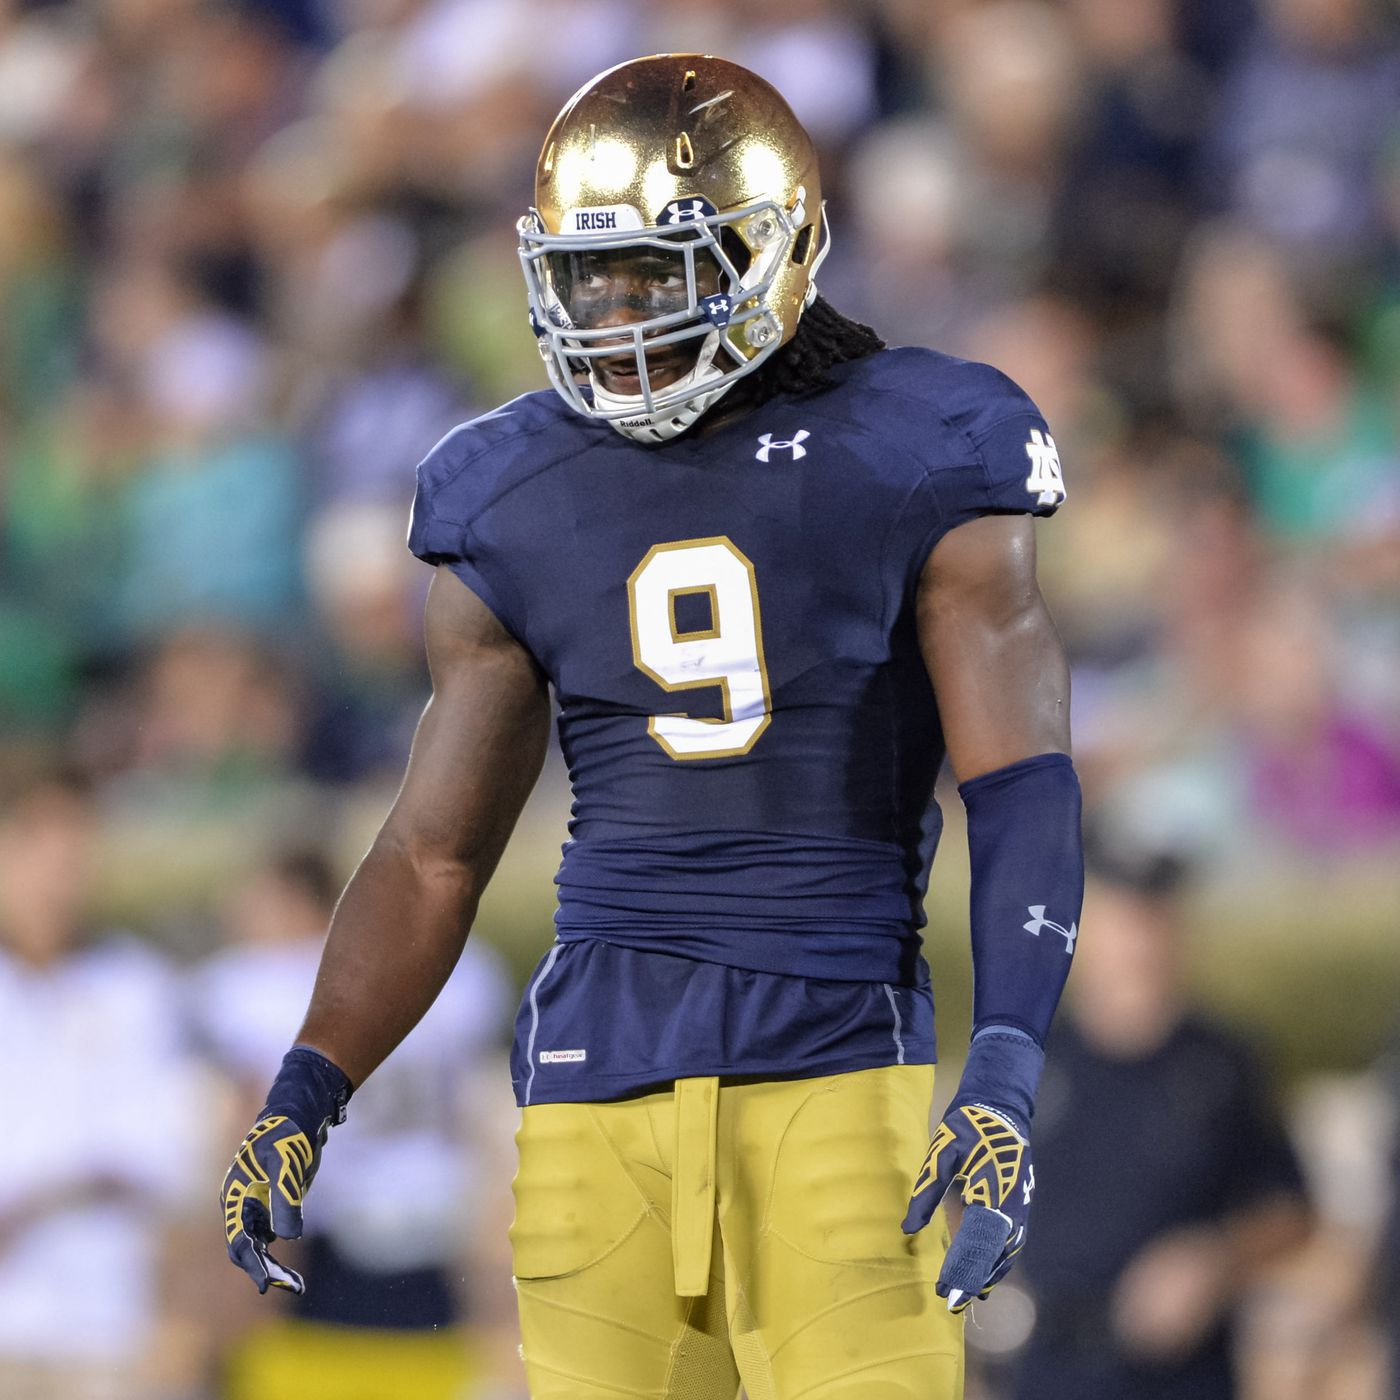 It appears Jaylon Smith would like to wear number 9 if NFL allows ...